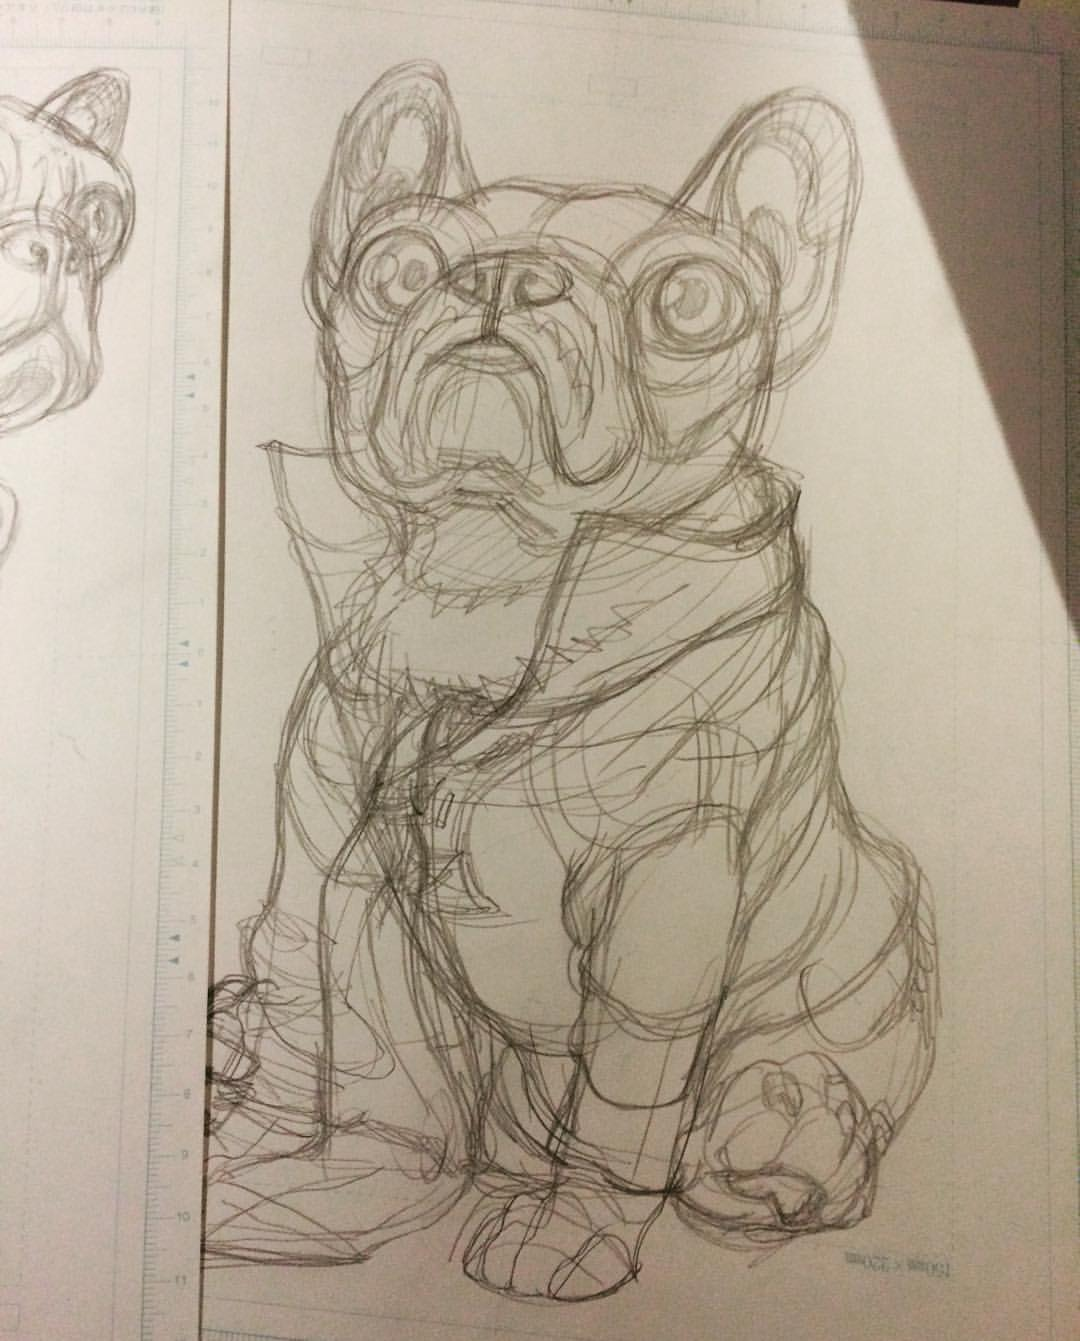 bulledog sketch, rough, illustration future work